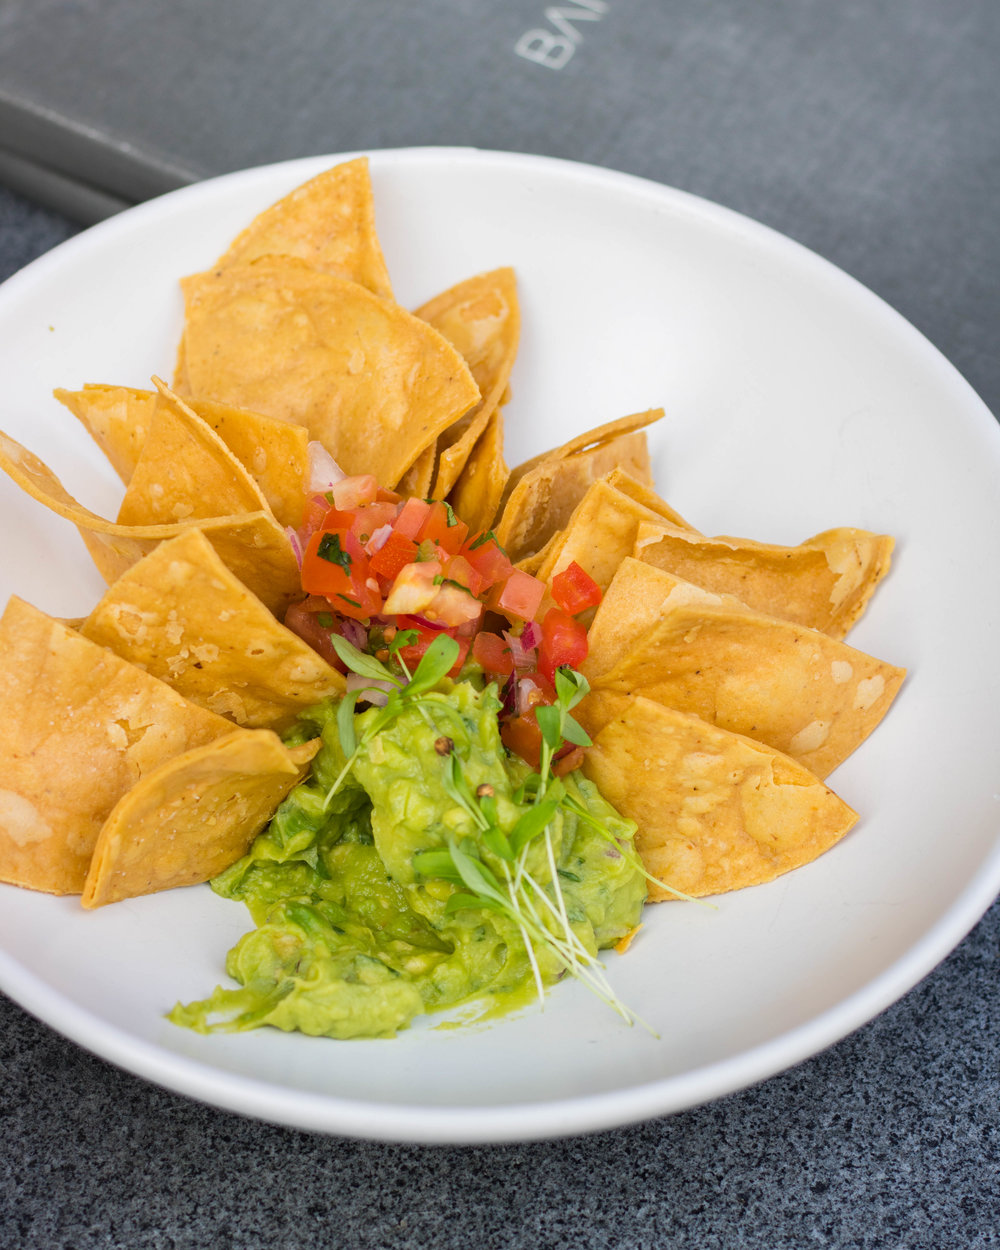 Chips and Guacamole Starter